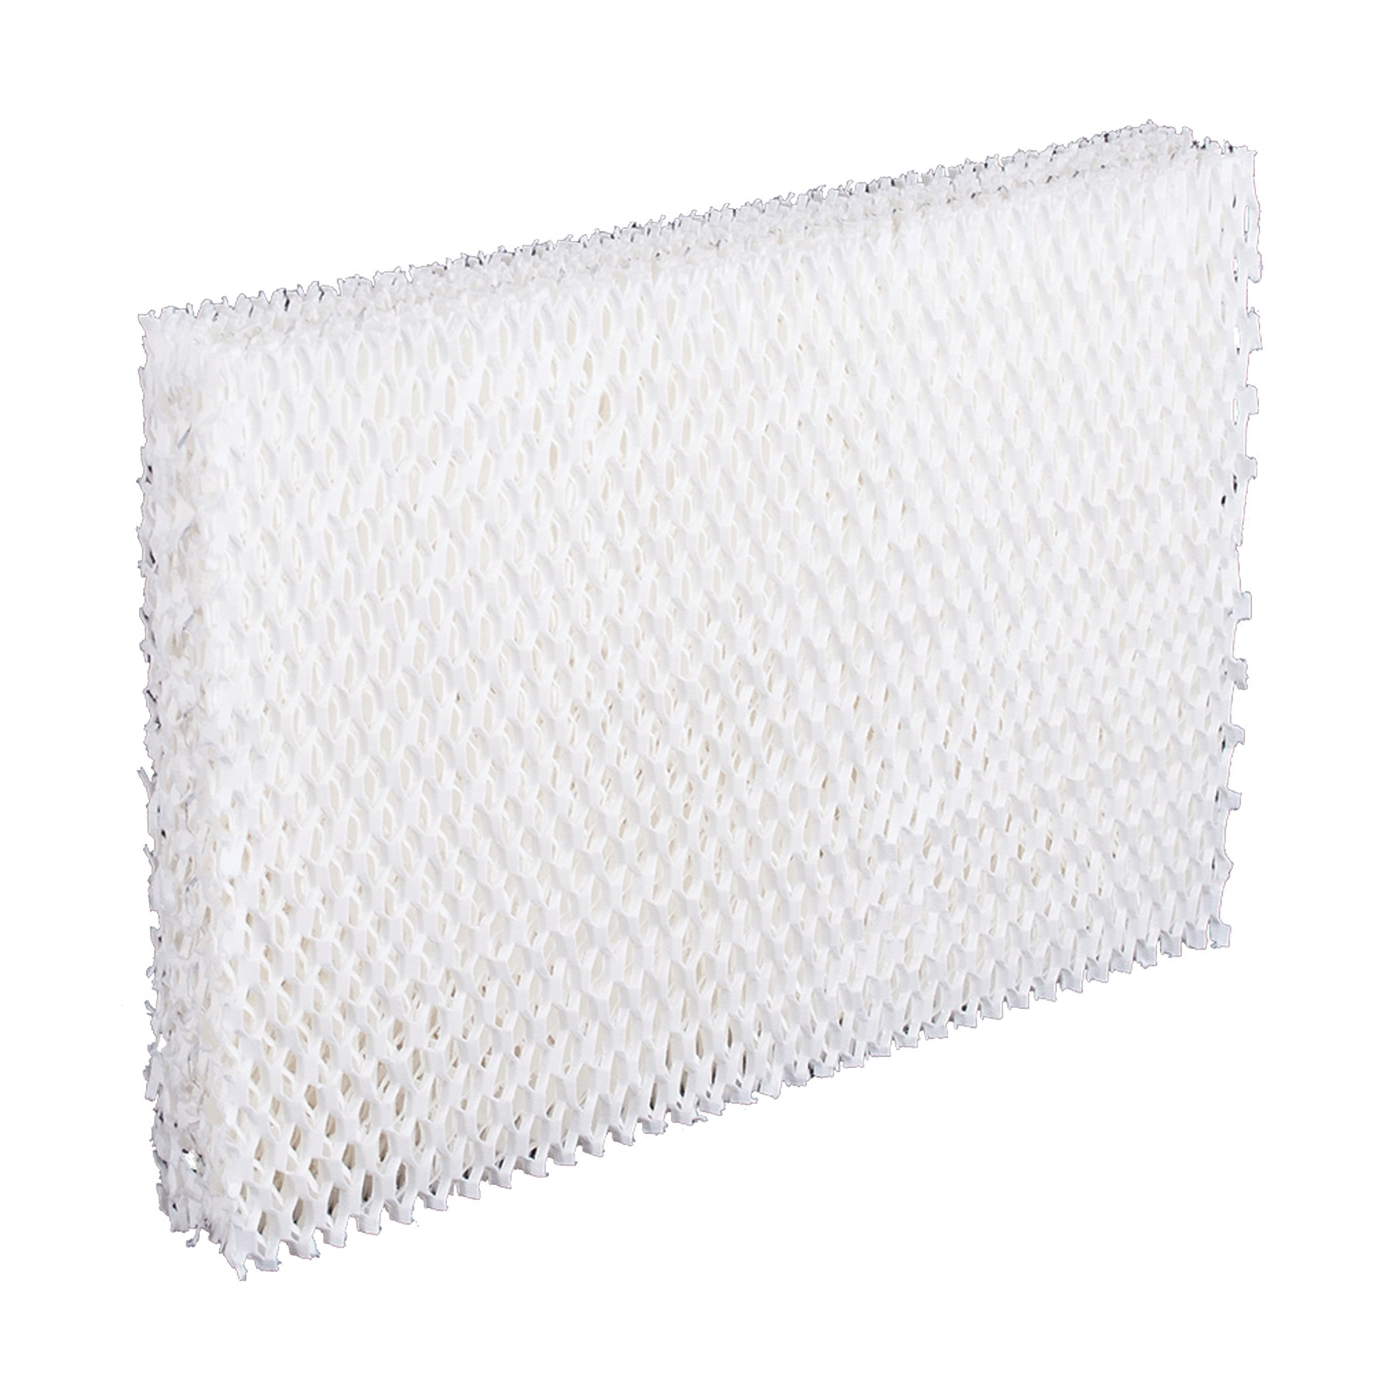 Picture of BestAir L8-C Wick Filter, 12 in L, 1-3/4 in W, For: Lasko 1128, 1129 Humidifier